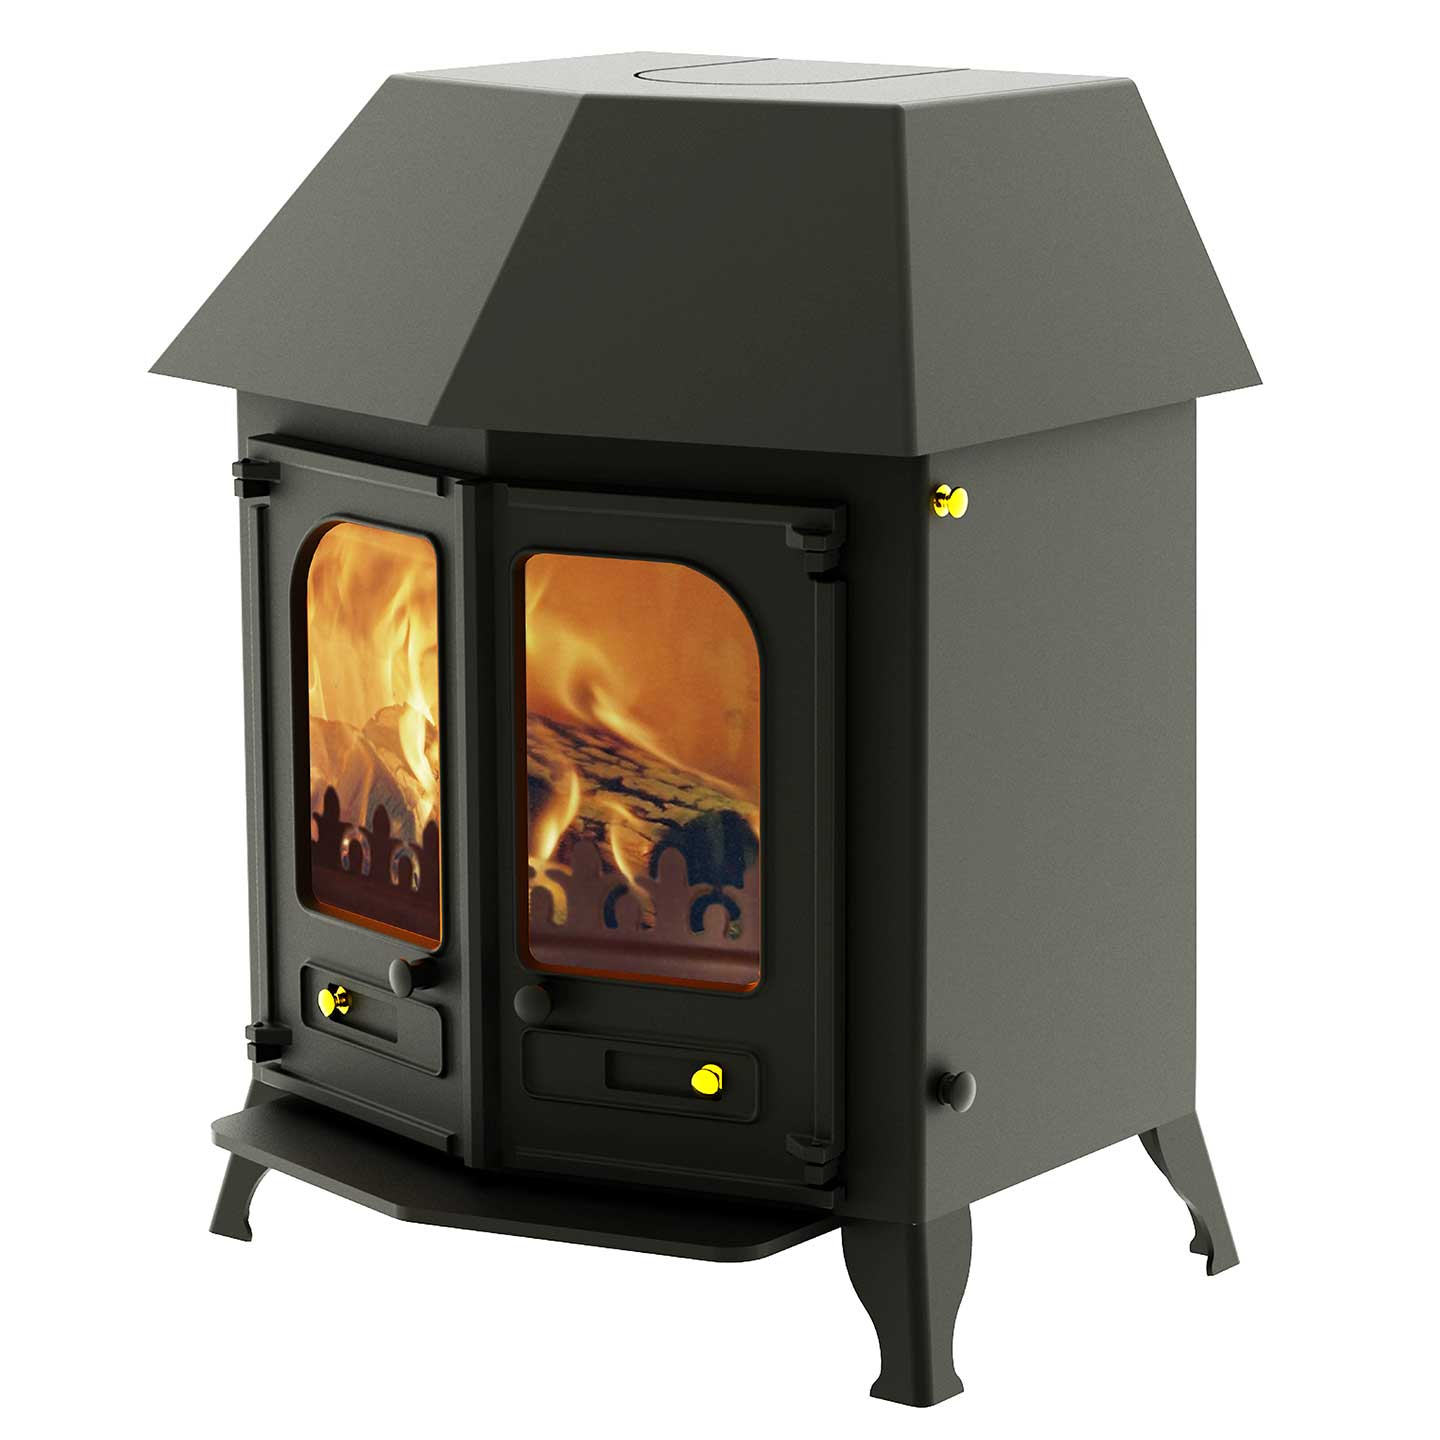 charnwood country 12 multi fuel 12kw stove the stove. Black Bedroom Furniture Sets. Home Design Ideas